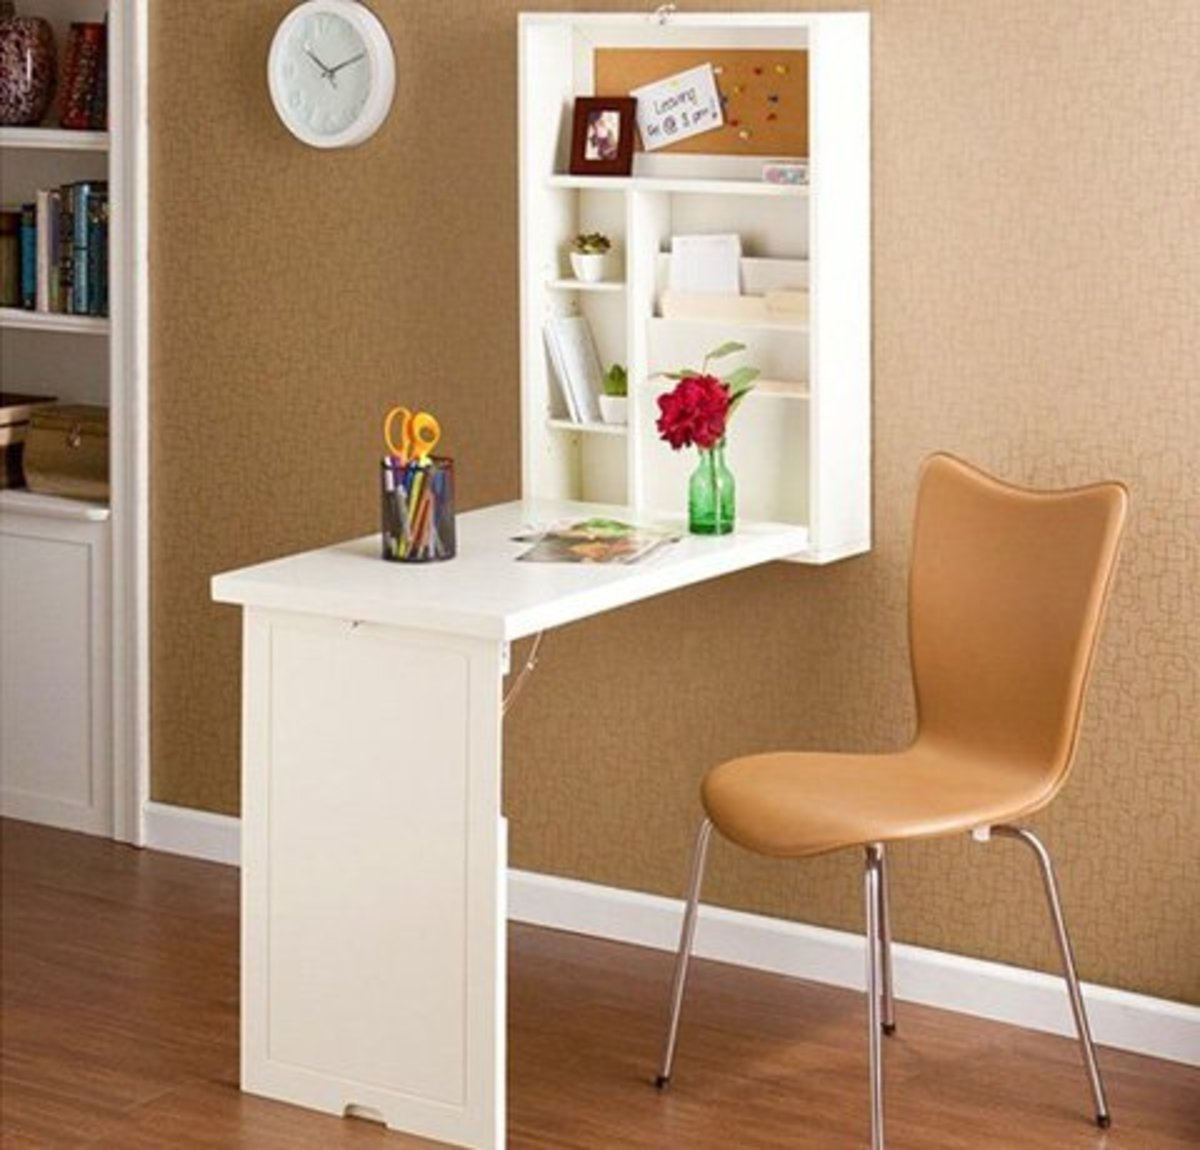 Foldout Desk   Easy Organization Ideas for the Home